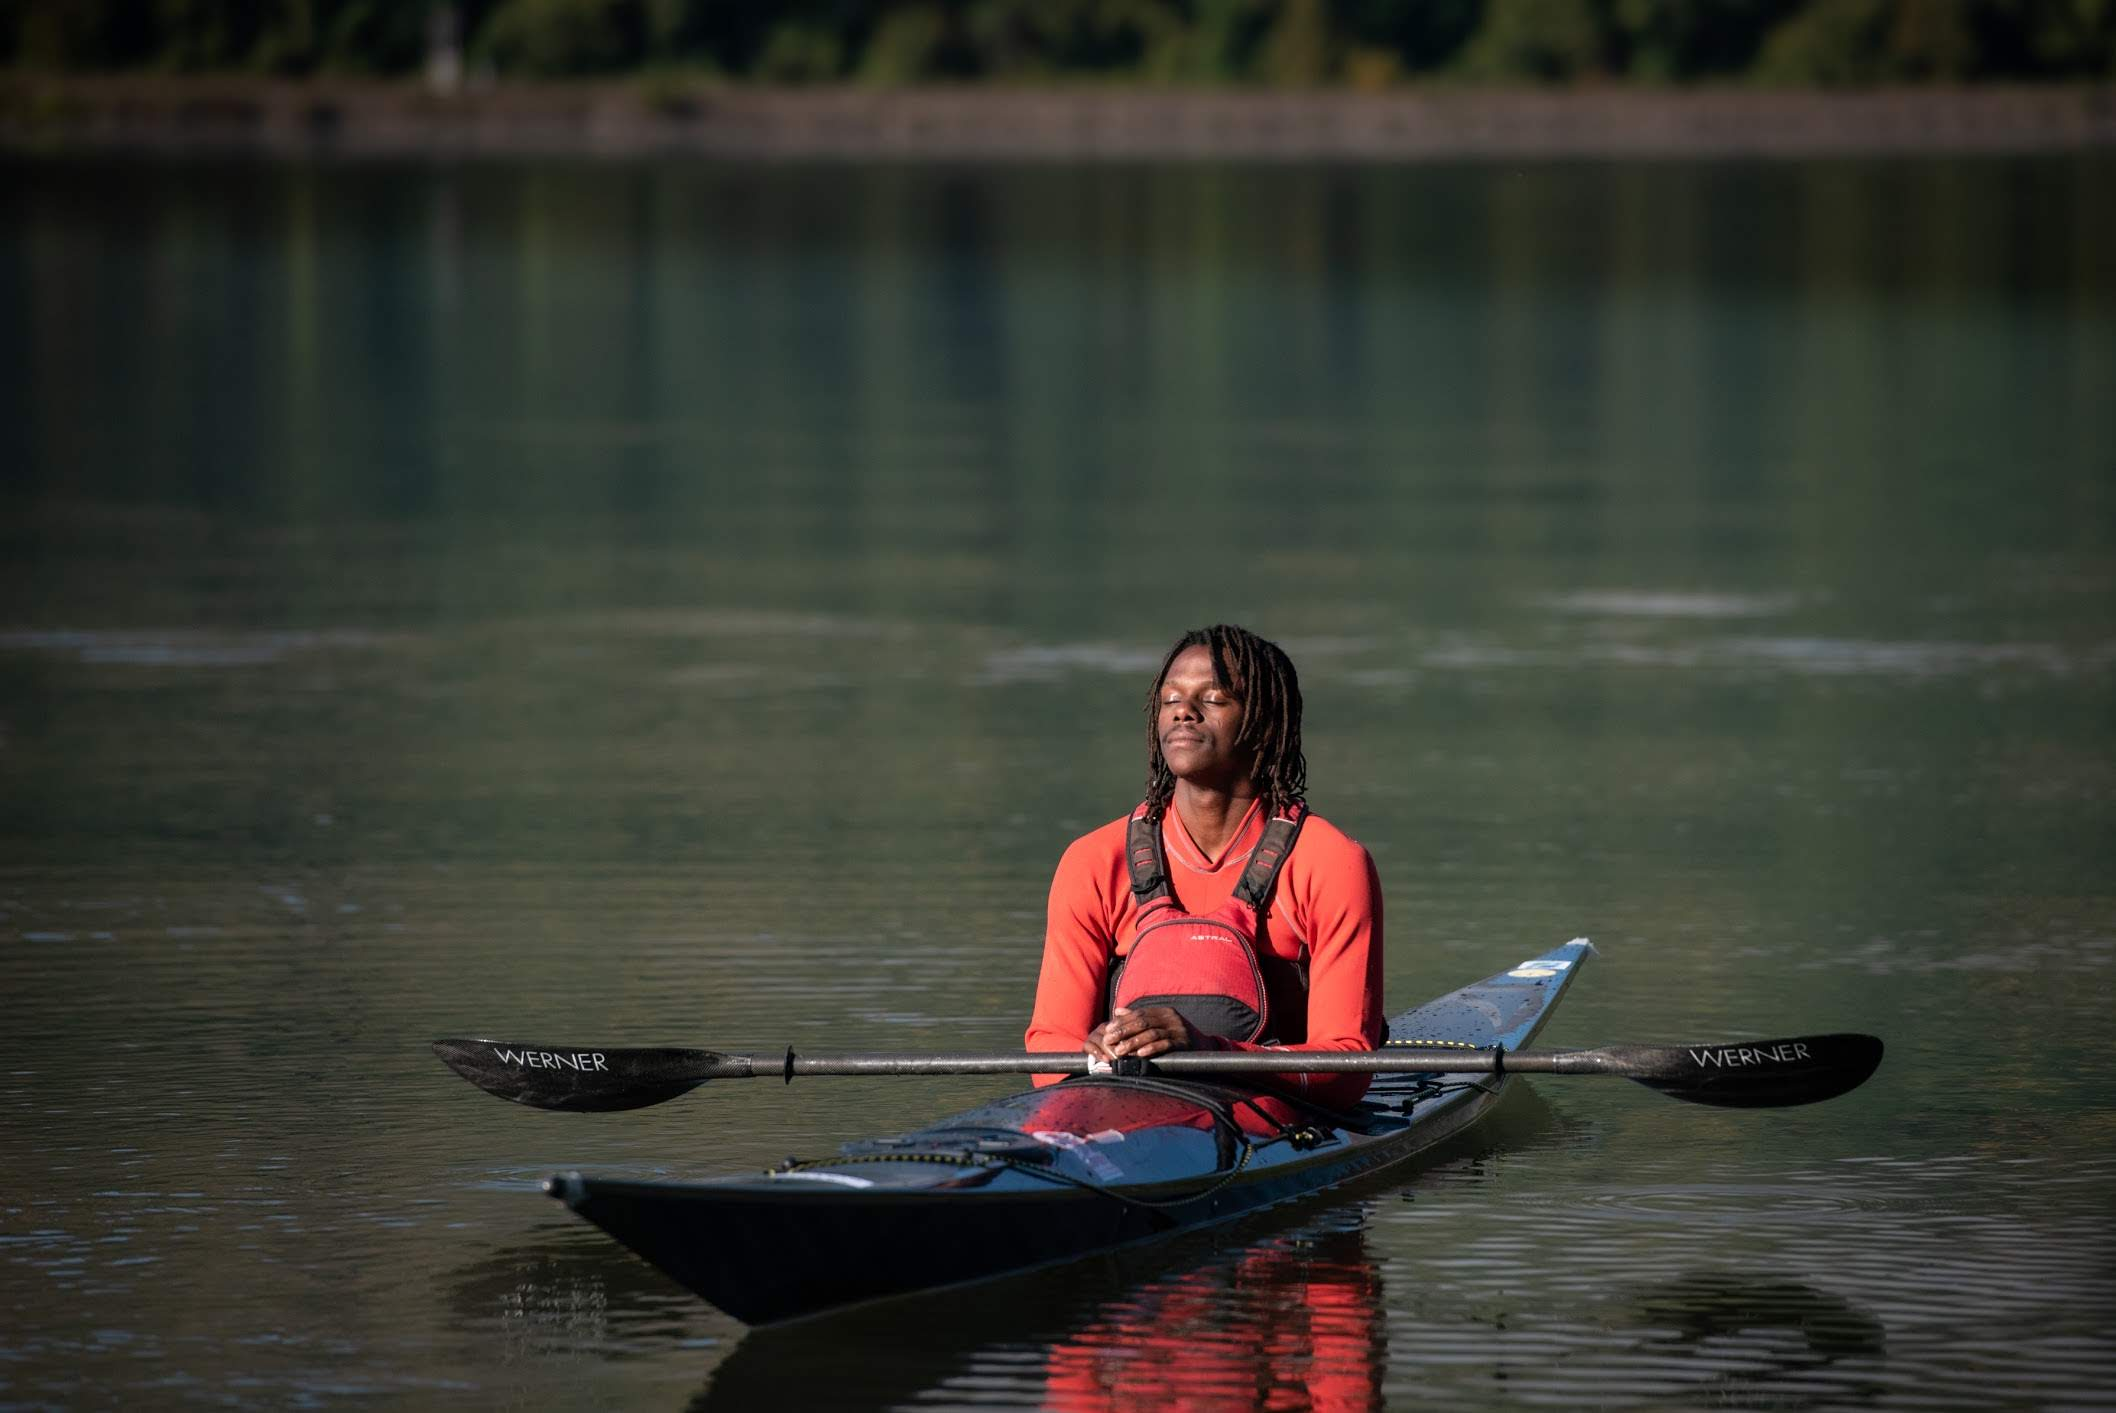 Chev Dixon tranquility on the water.